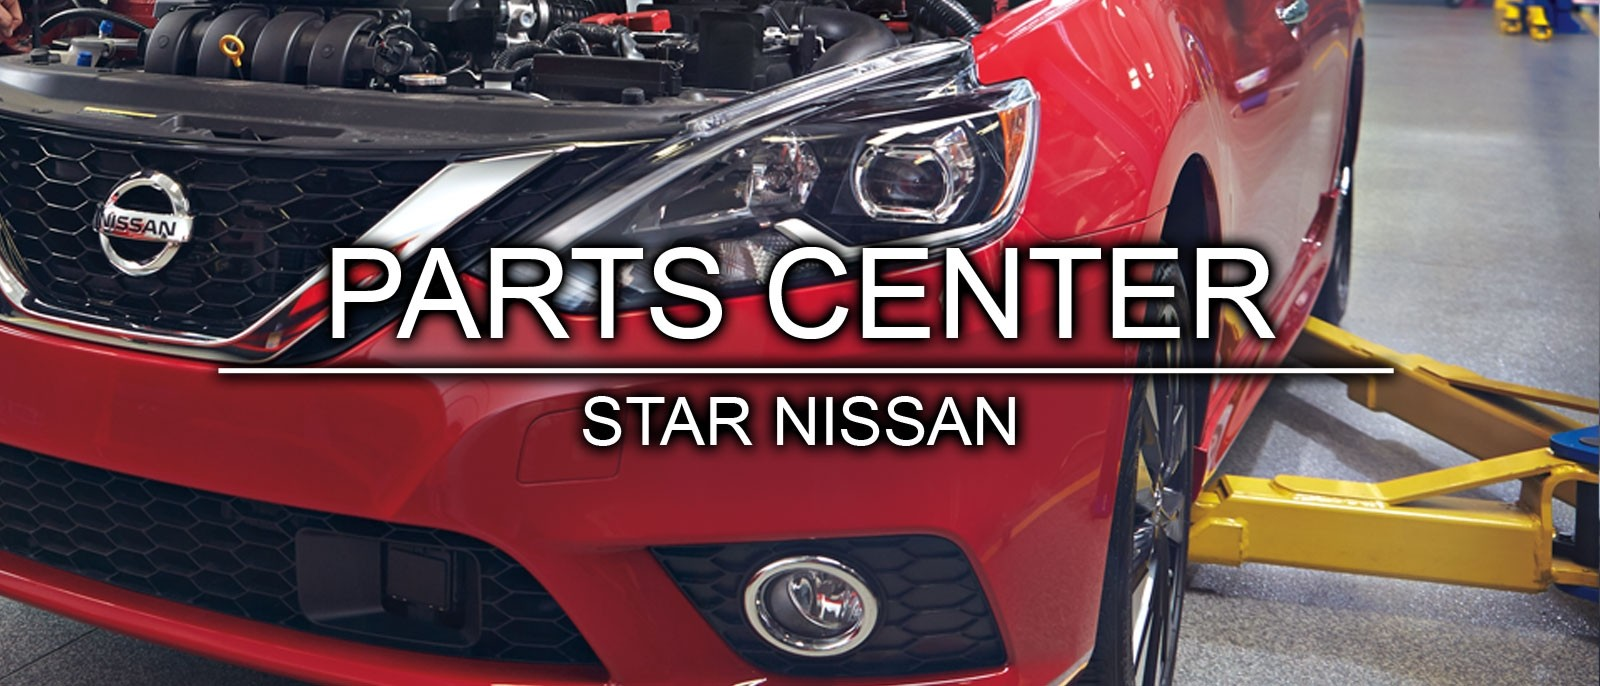 Star Nissan Parts Center